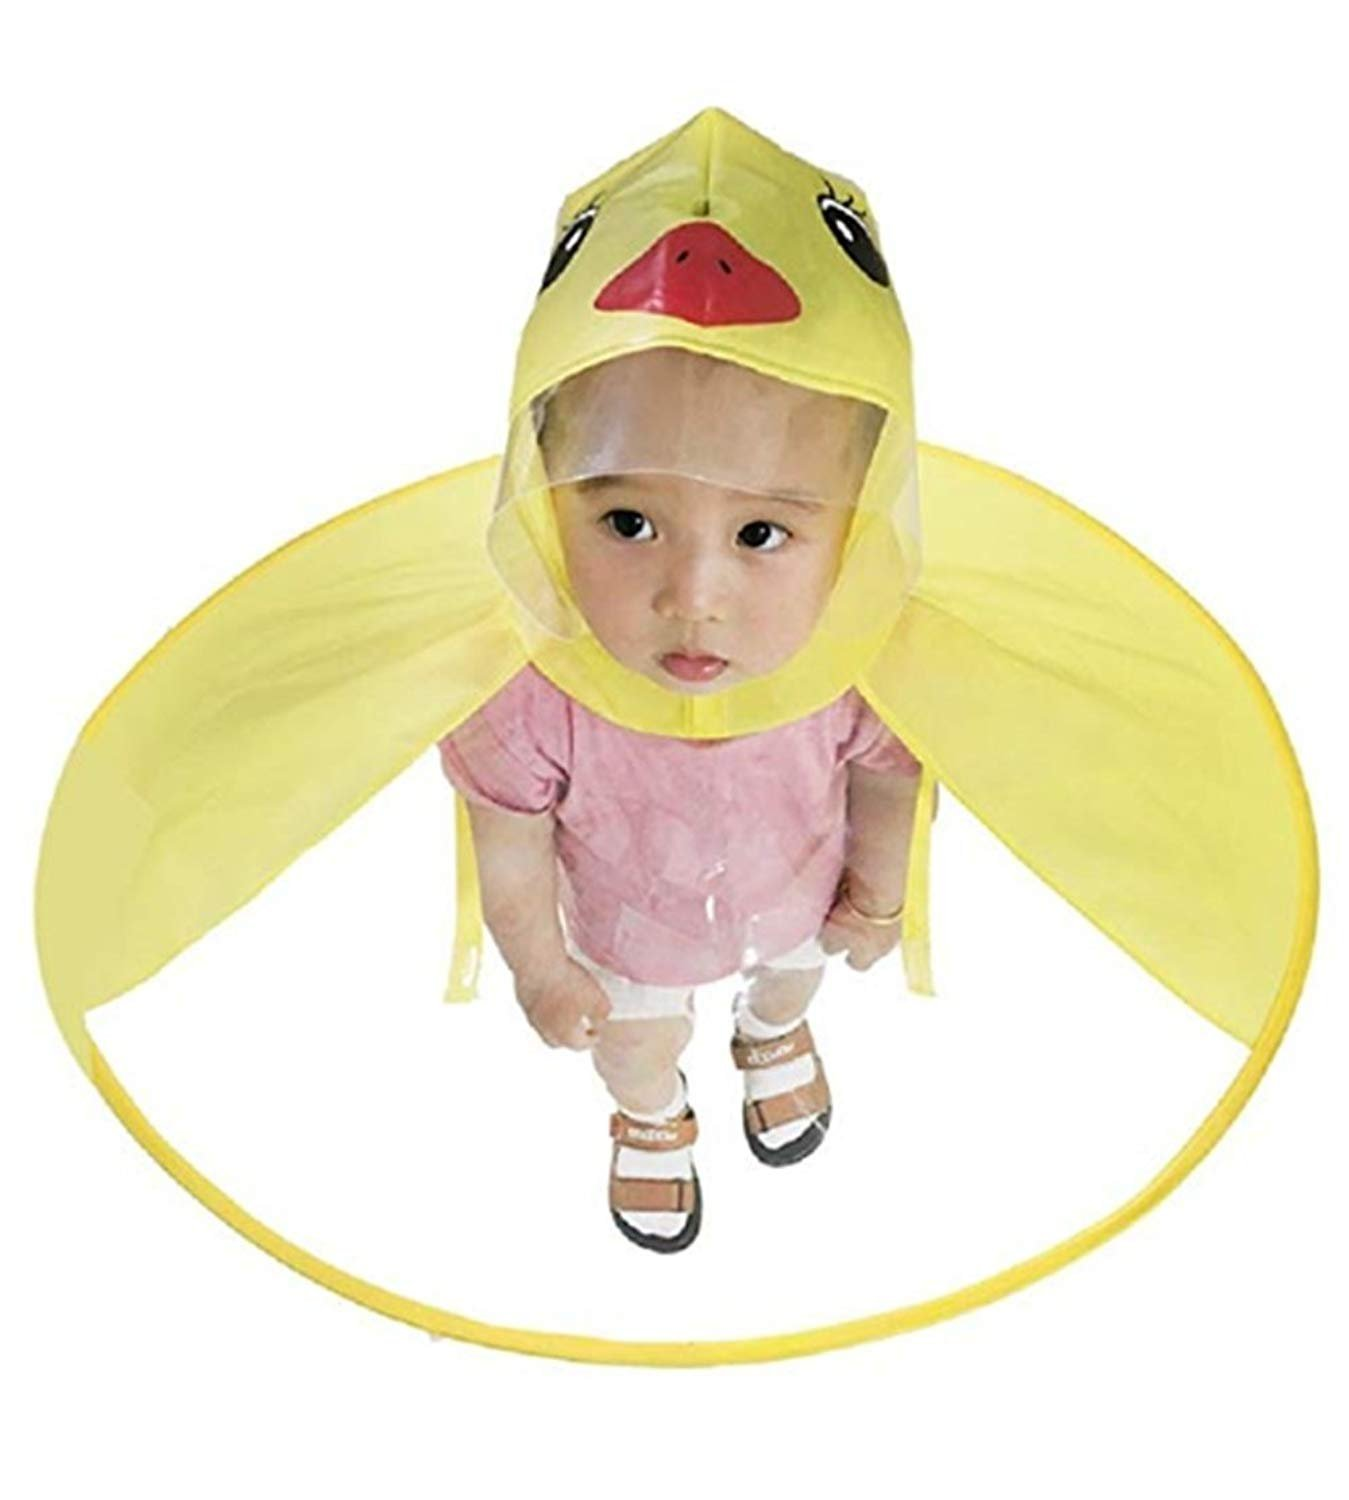 Cute Kids Raincoat Cartoon Umbrella Yellow Duck Packable Hooded Poncho Cloak for Boys Girls Baby Toddler